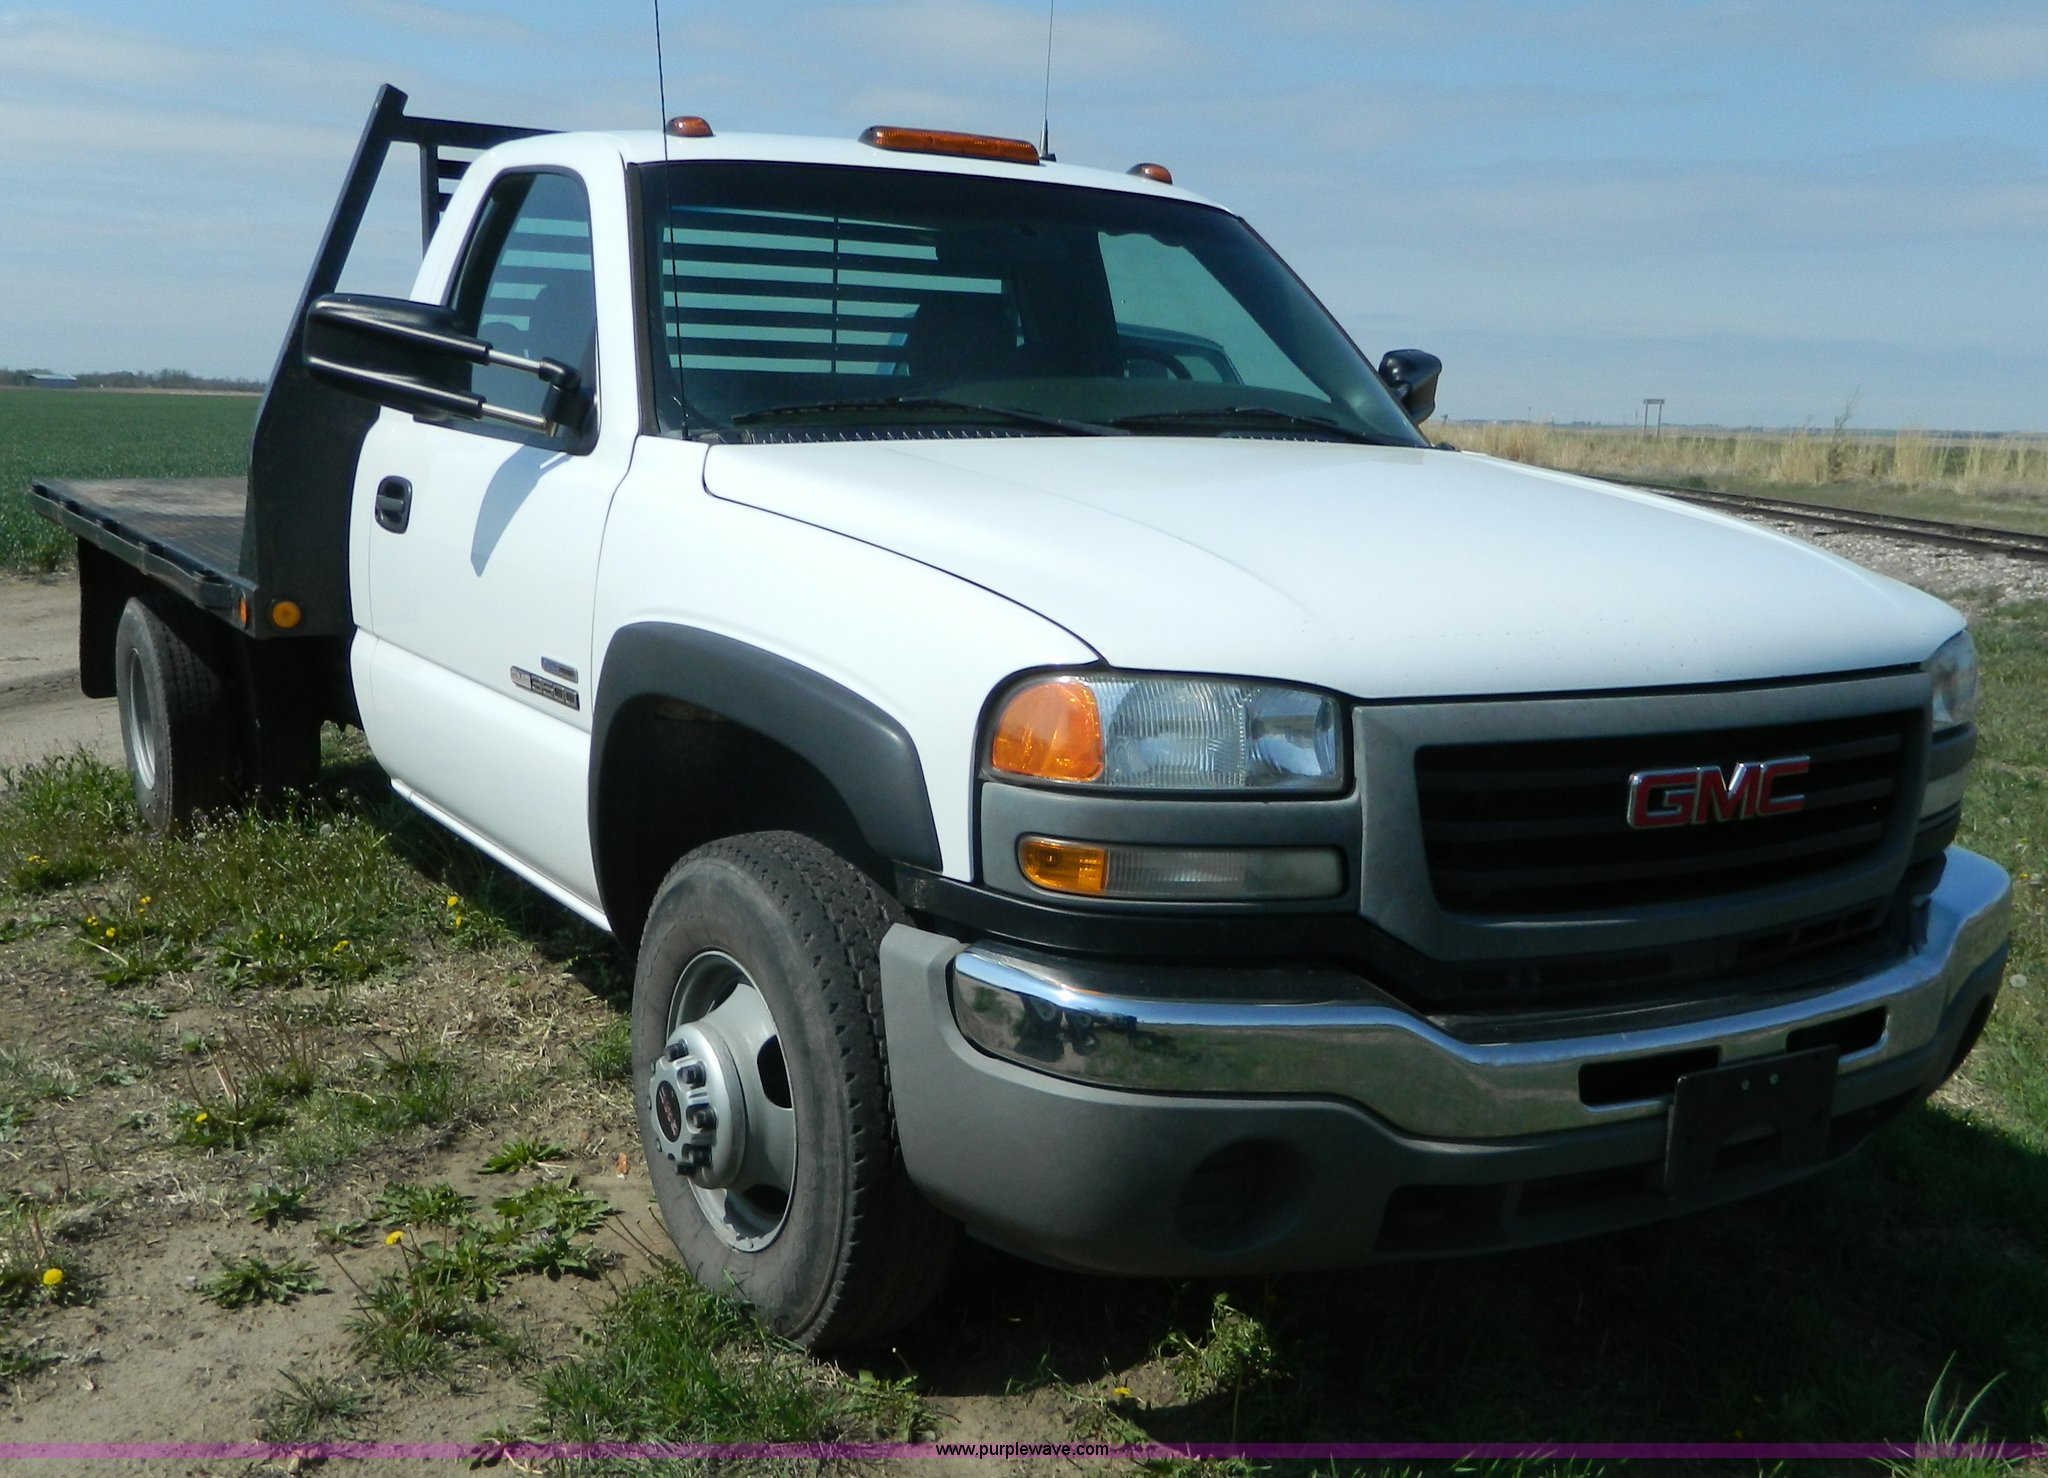 2006 Gmc Sierra 3500 Flatbed Pickup Truck Item K8066 Sol Dodge Wiring Full Size In New Window